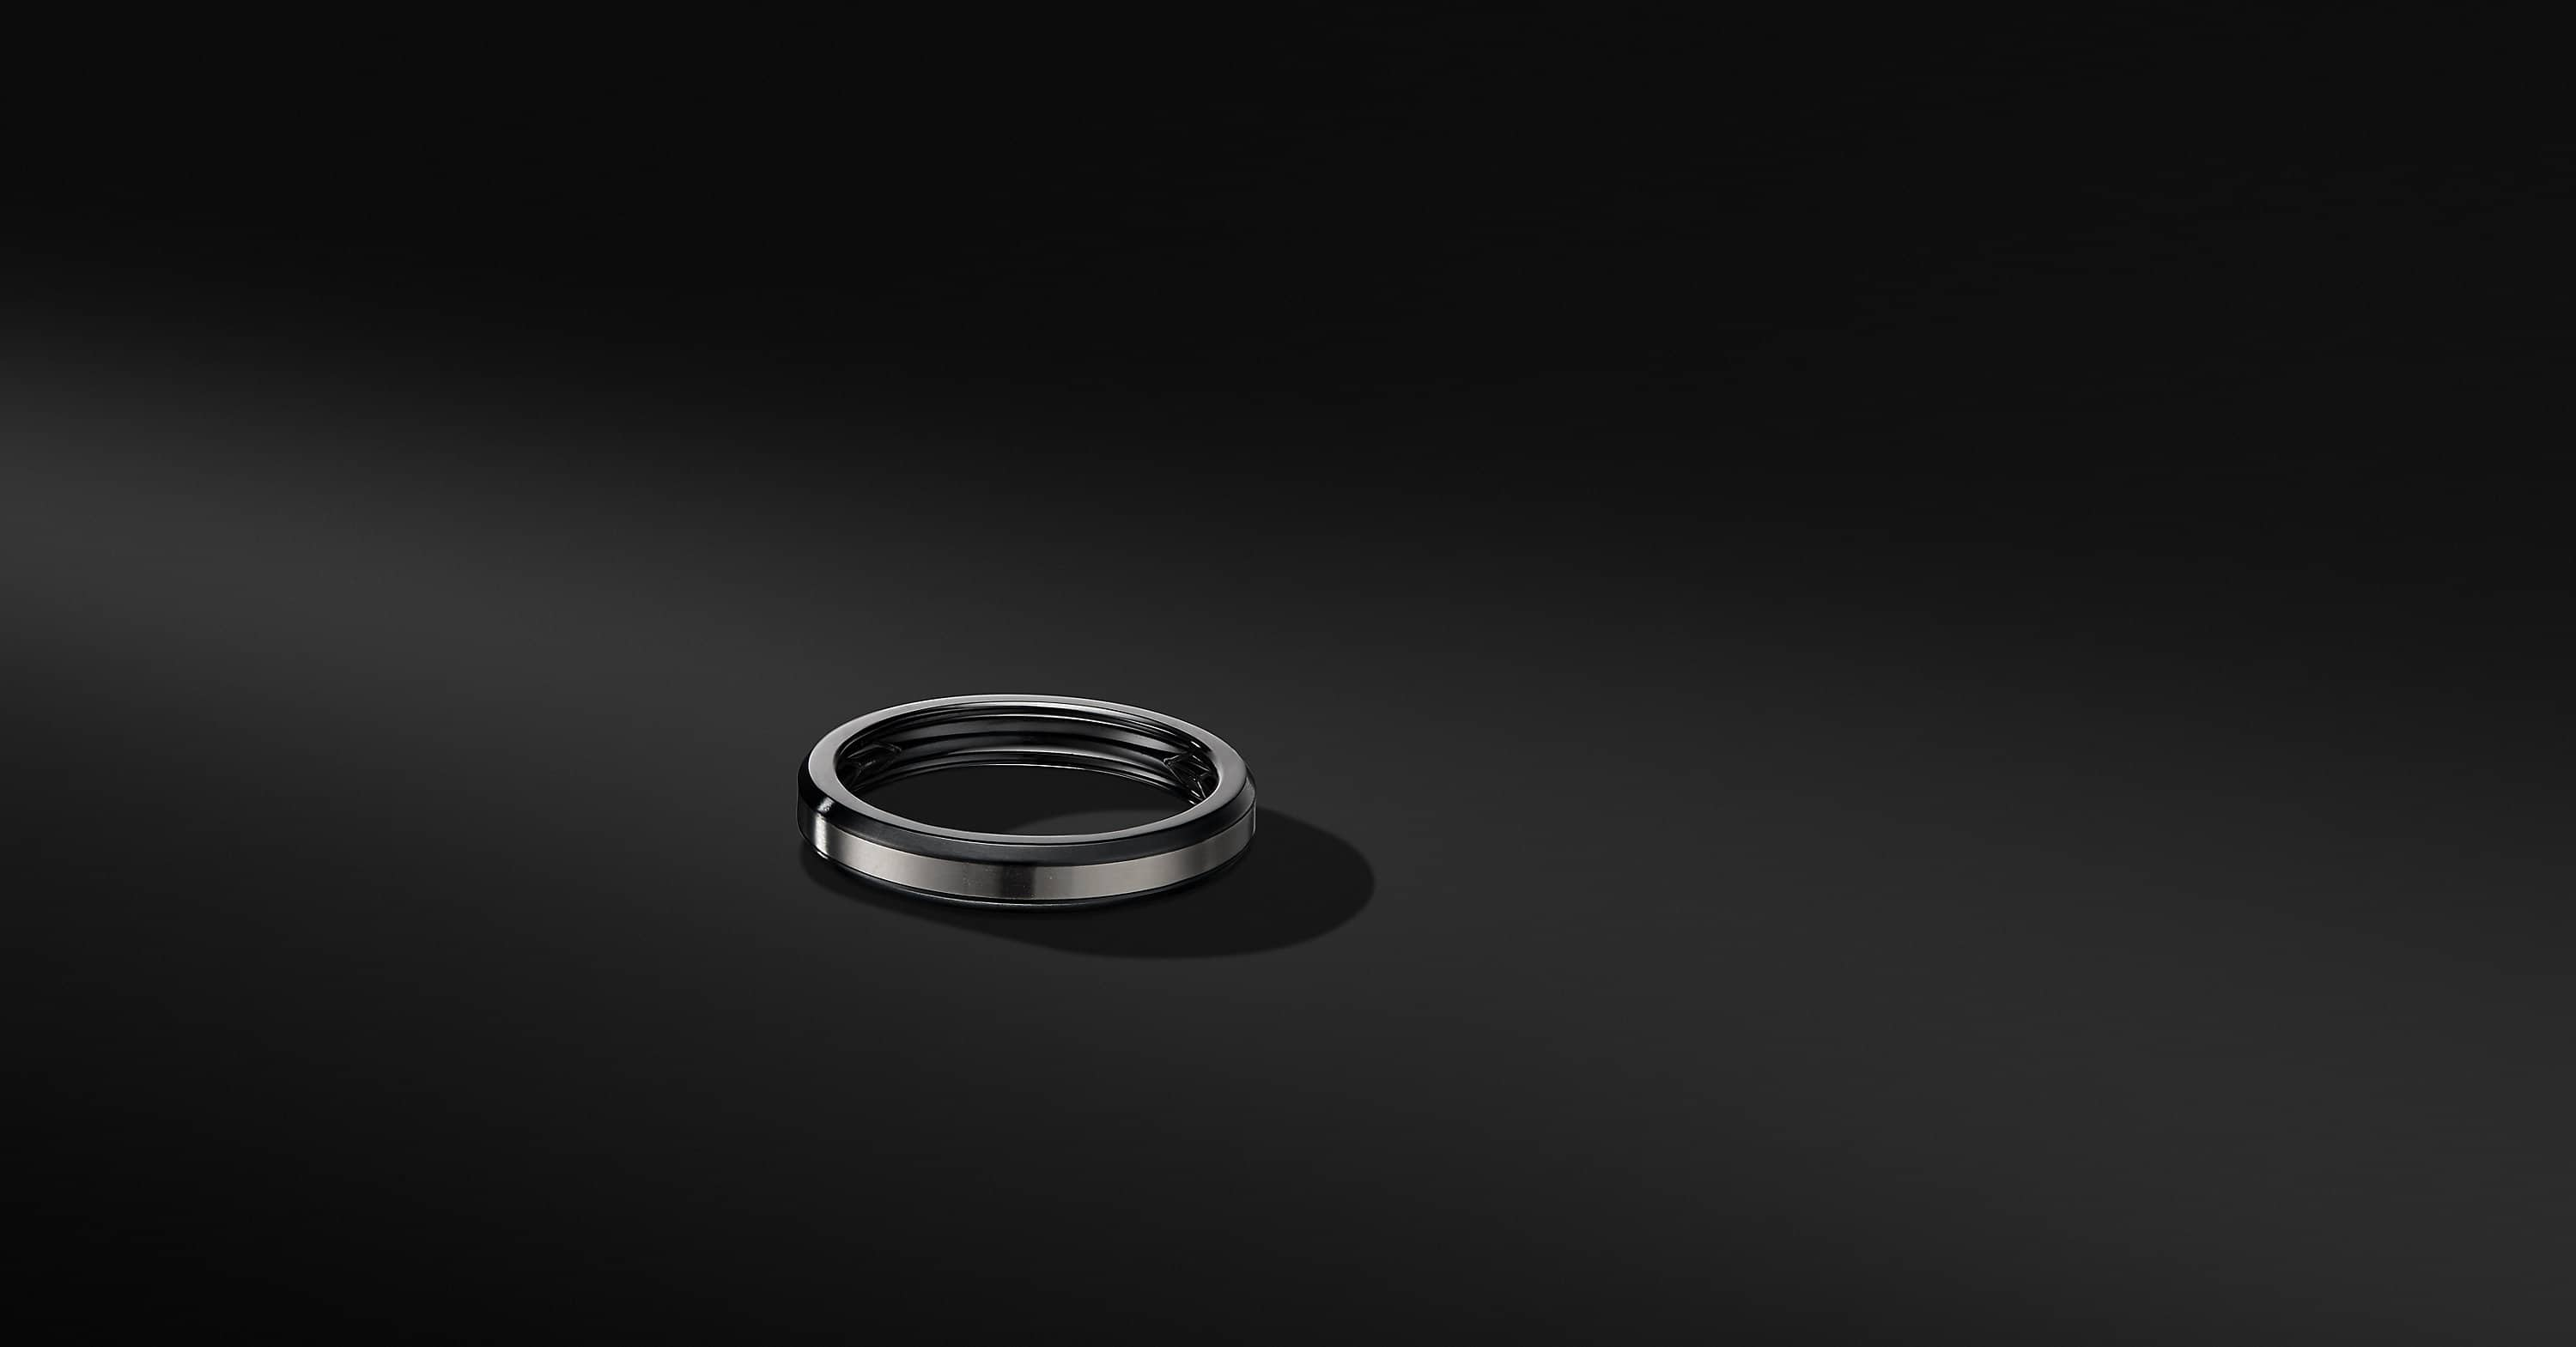 Beveled Band Ring in Black Titanium with Grey Titanium, 4mm